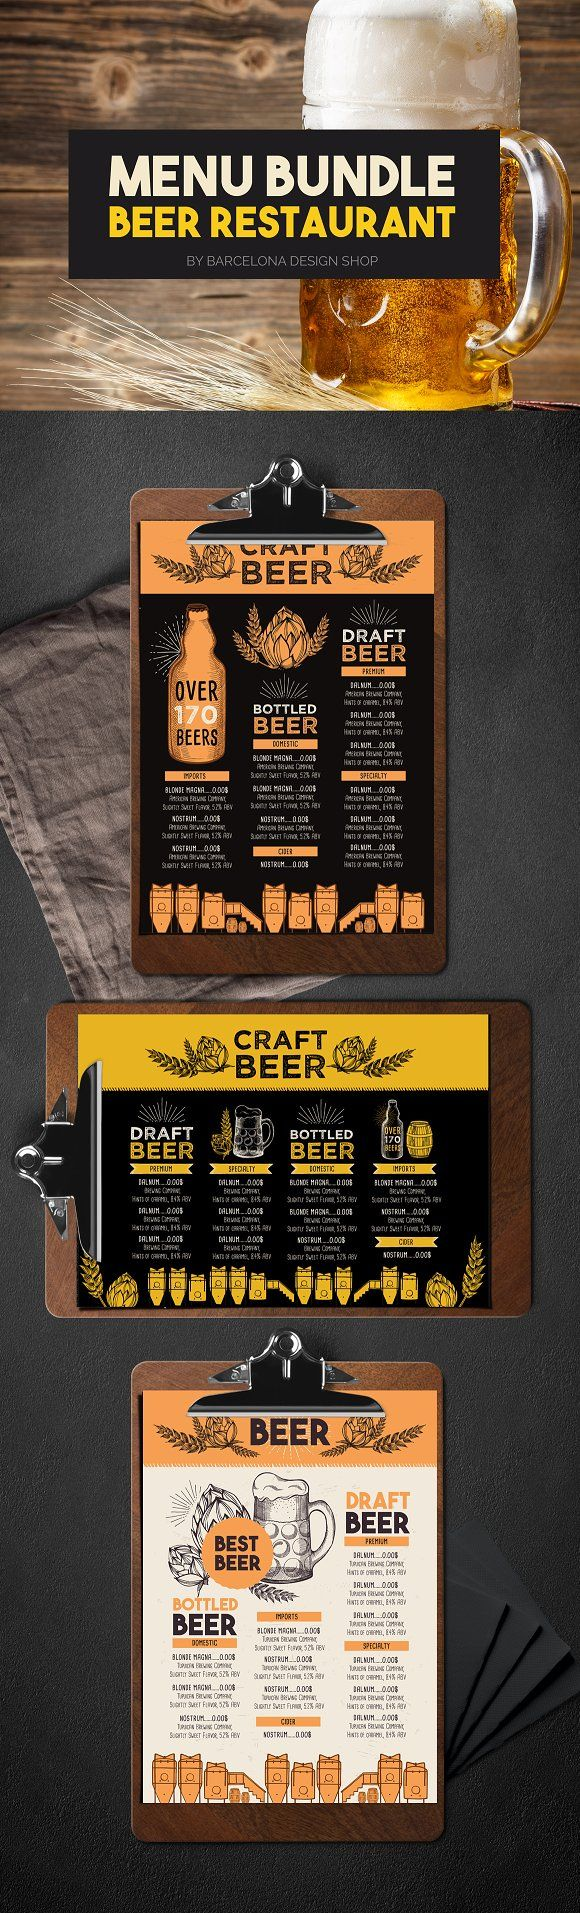 Beer Menu Bundle Freebie  Free Food Illustrations For Your